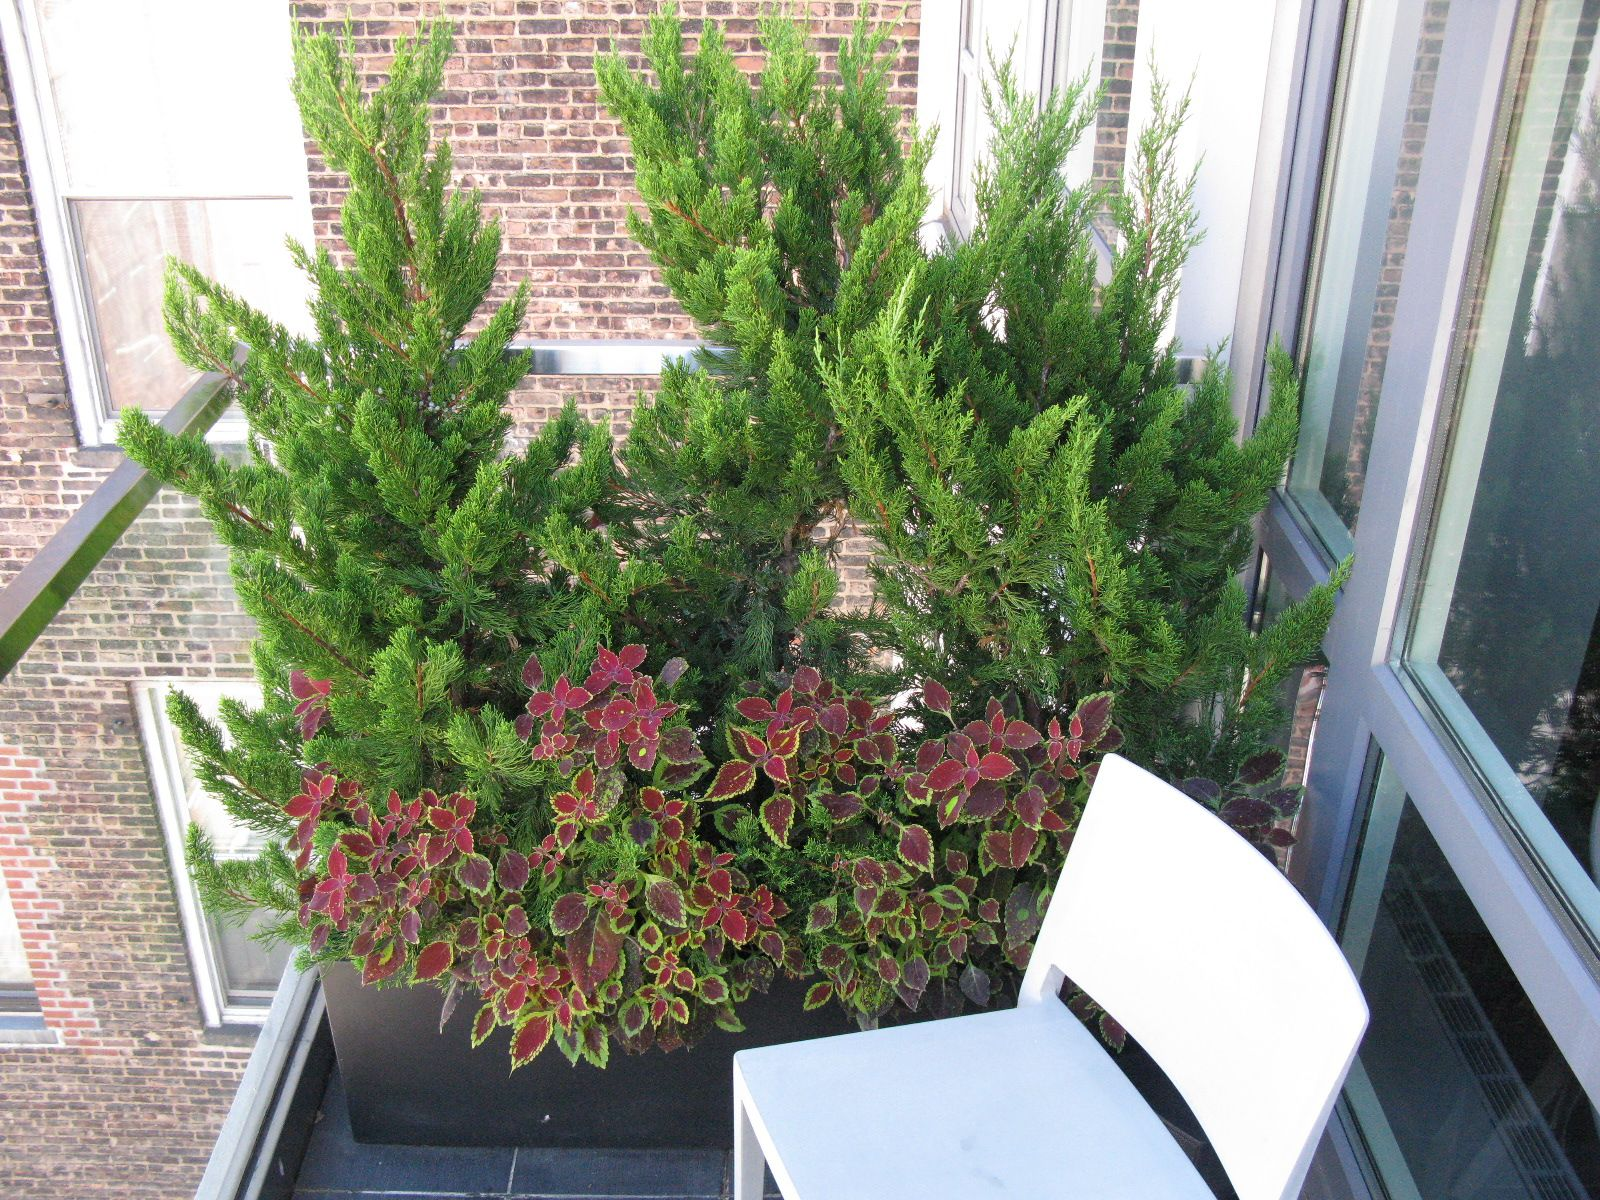 Evergreens breathe life to small balconies and provide a privacy screen.  What a great space